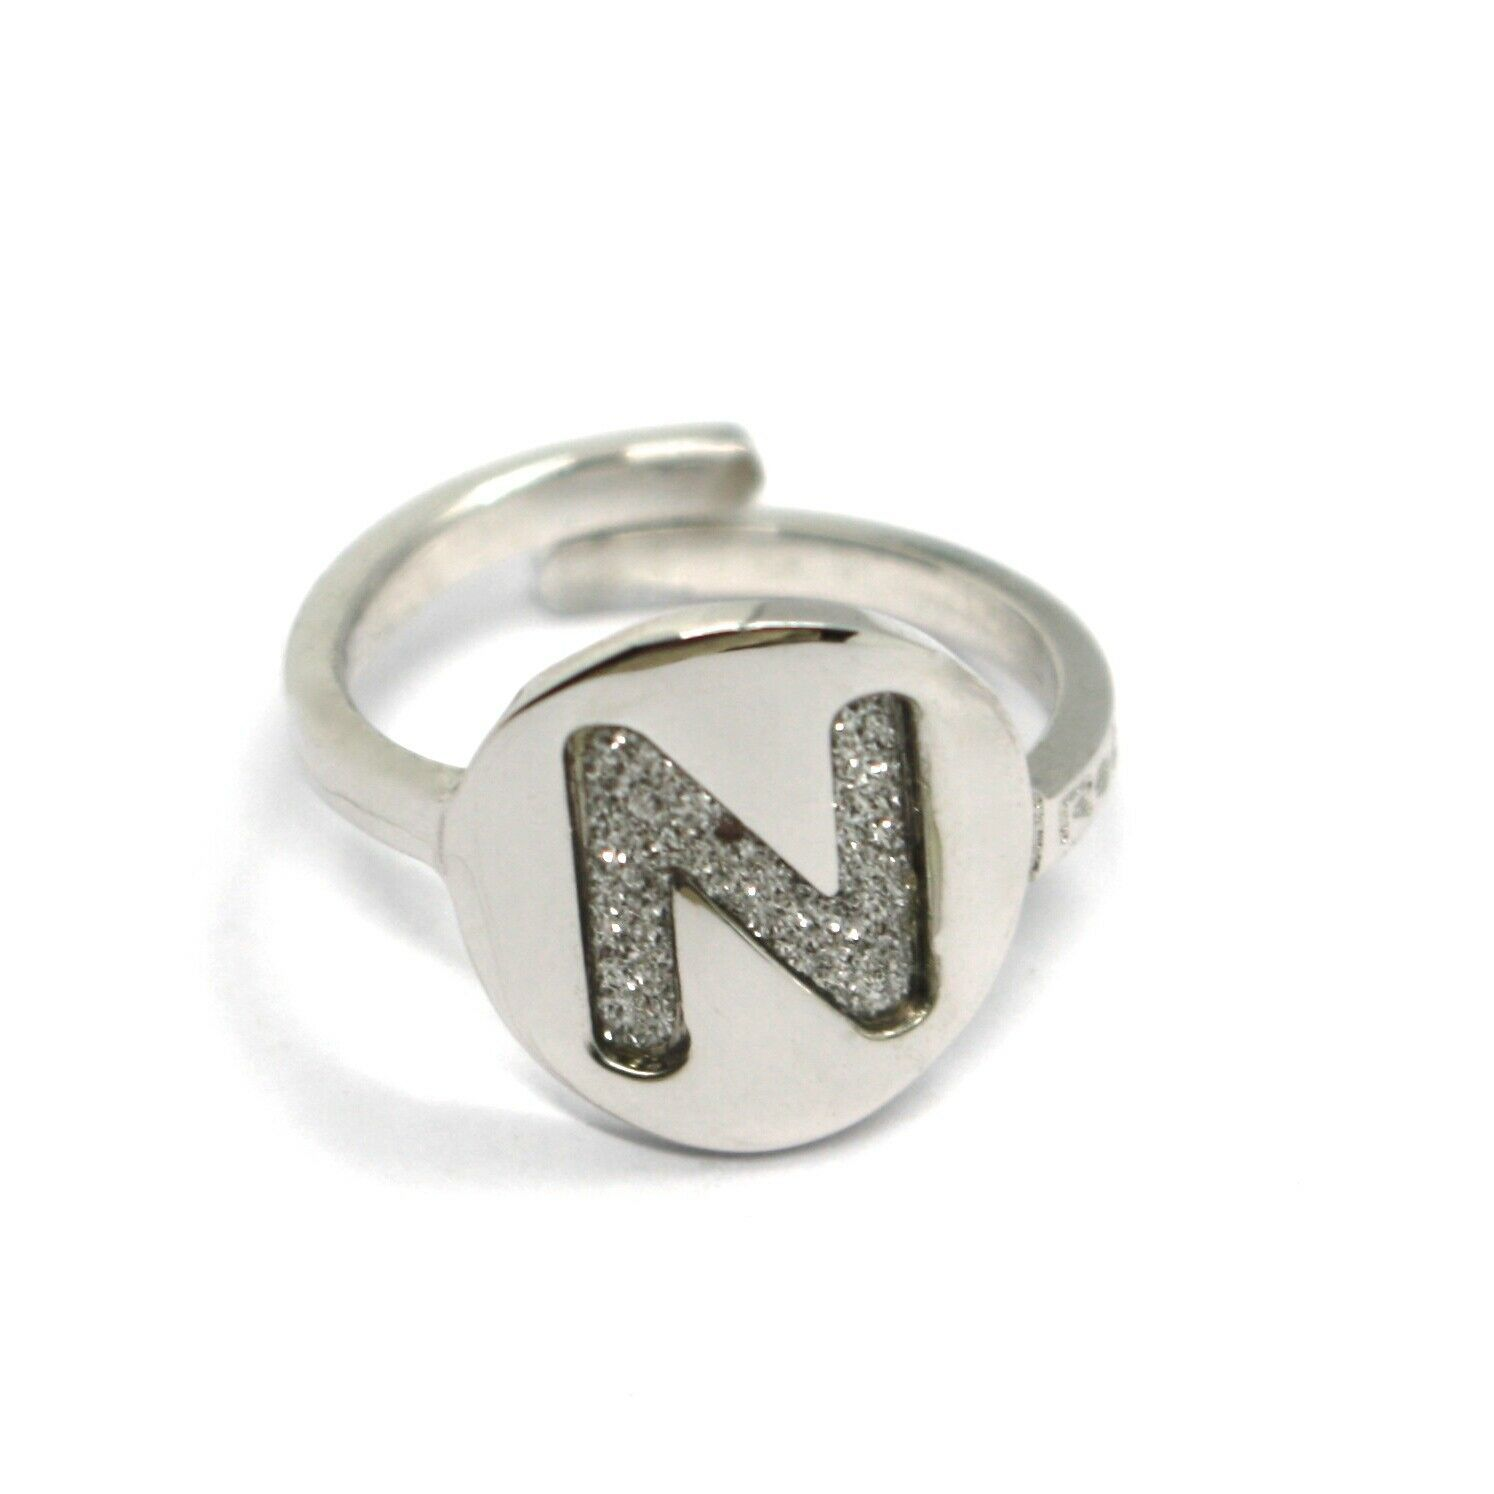 REBECCA BRONZE RING, LETTER N, INITIAL WITH GLITTER, MADE IN ITALY, ADJUSTABLE